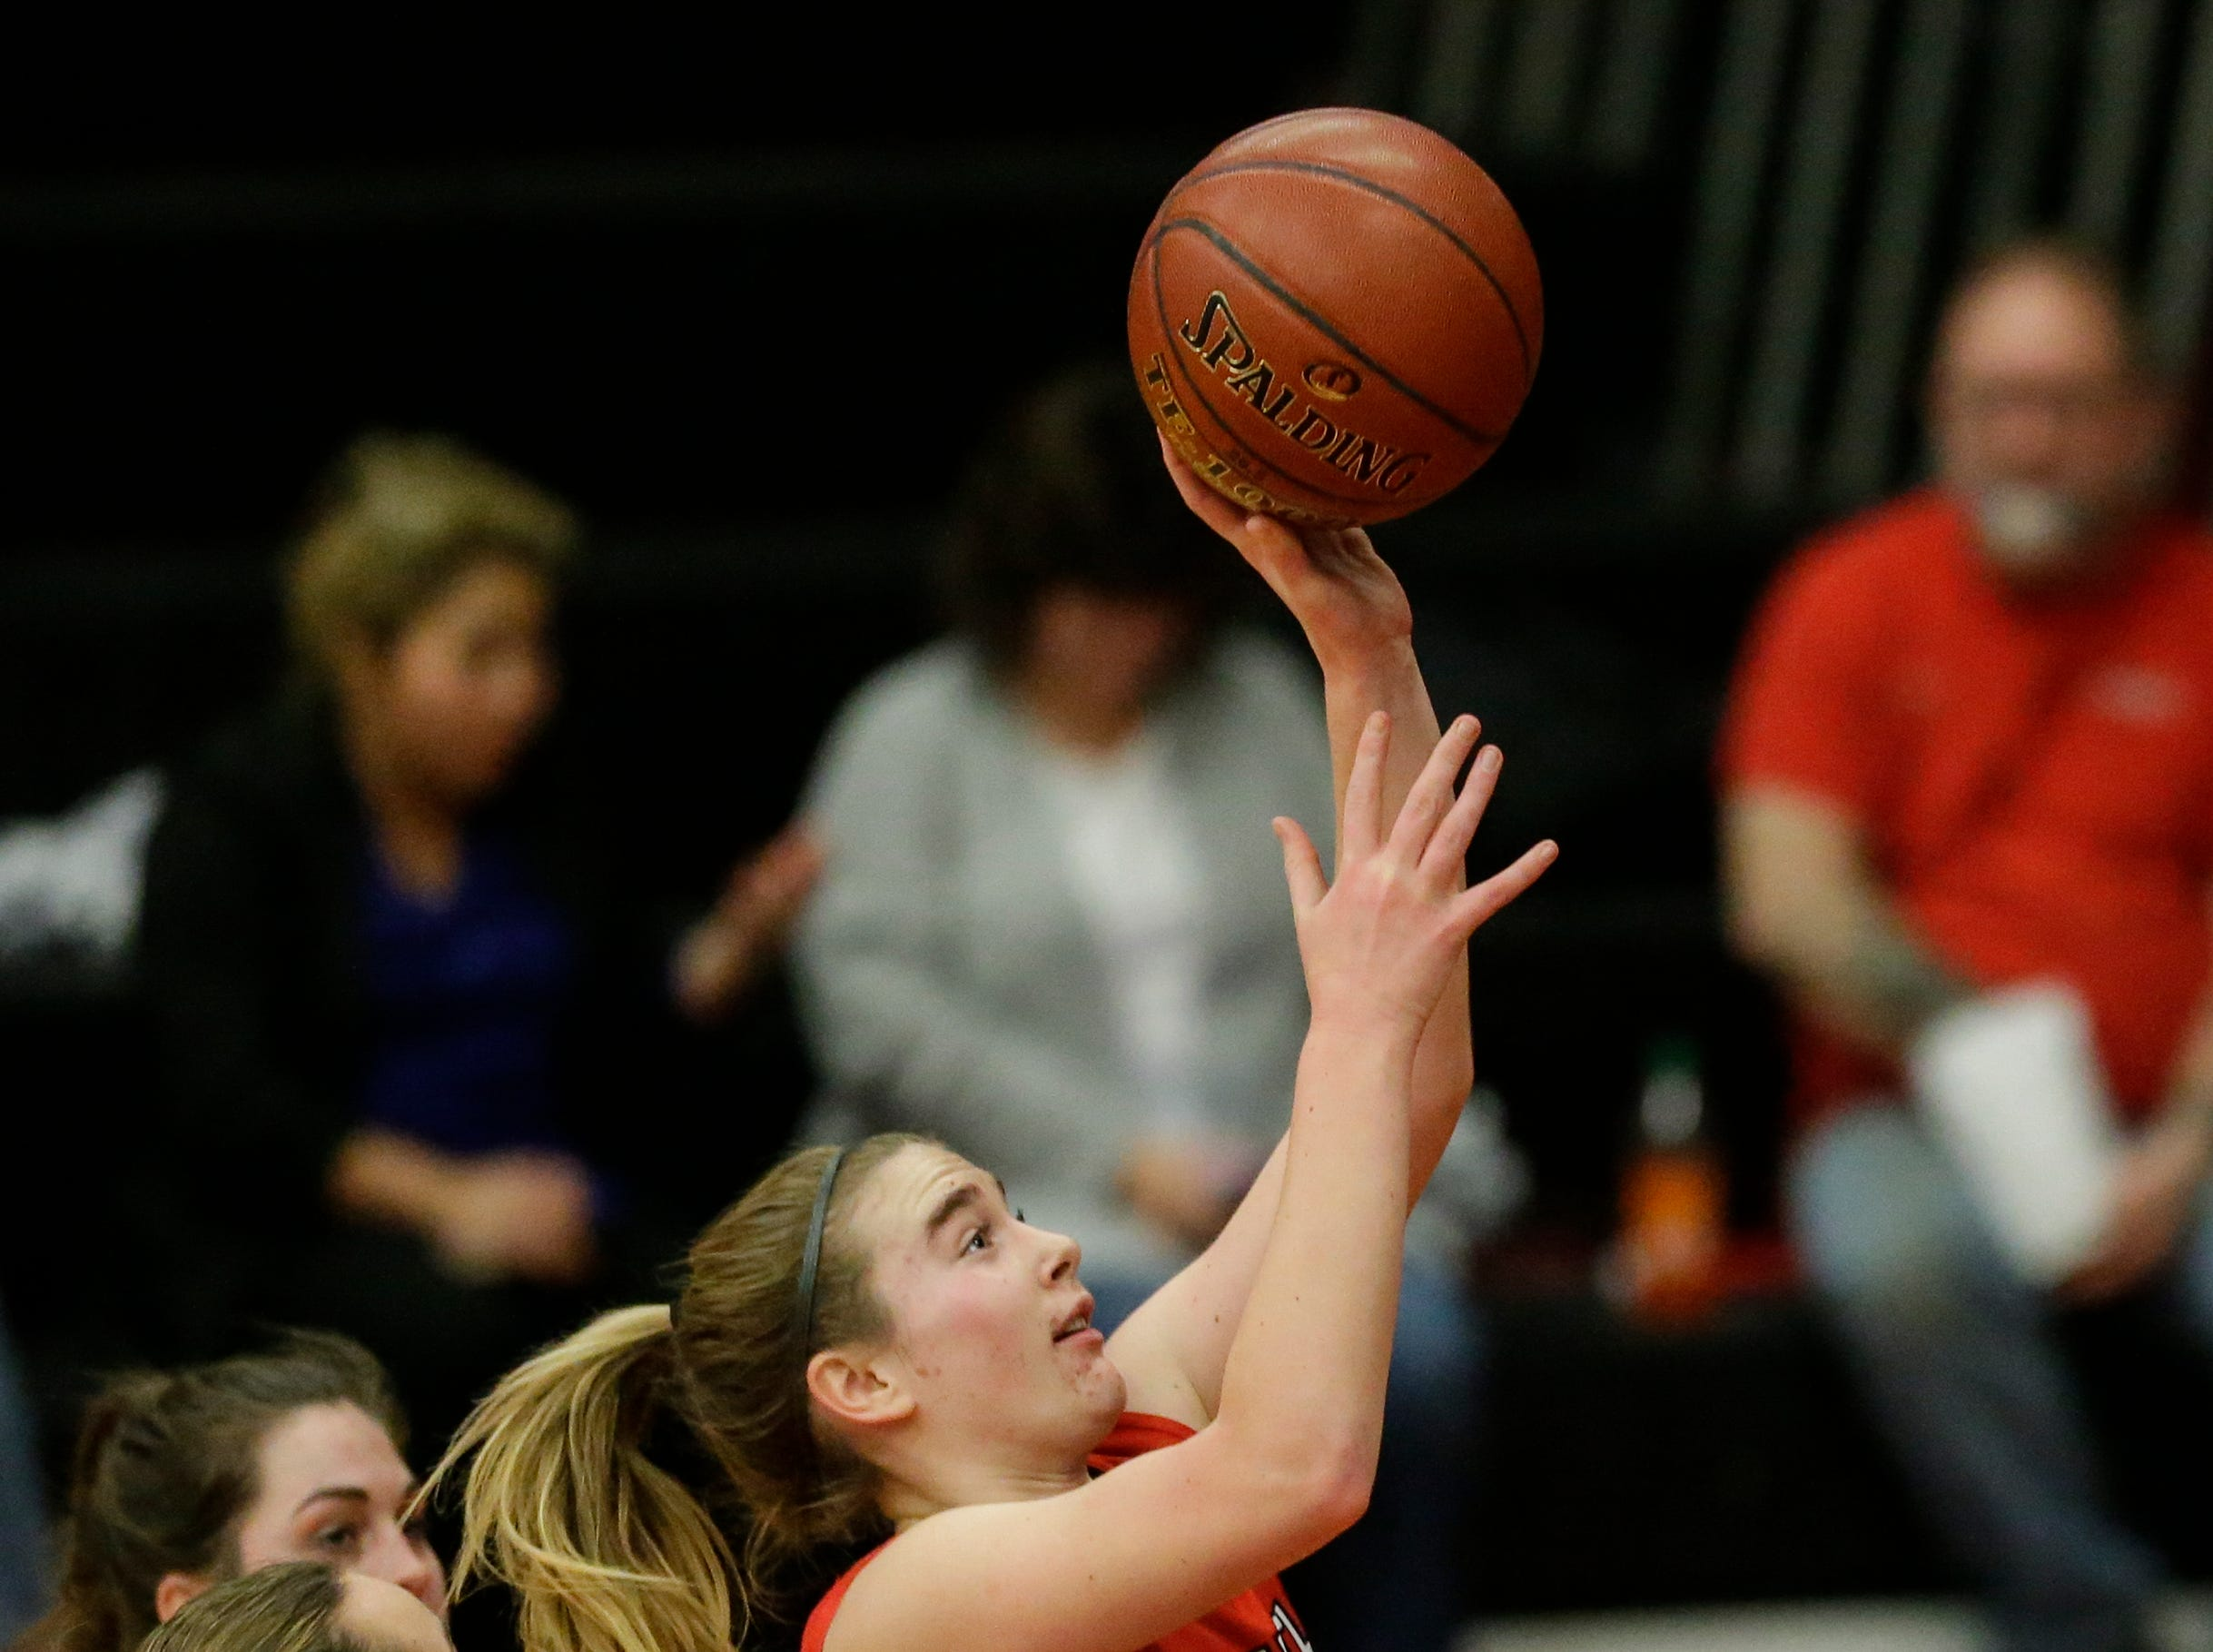 Sheboygan South's Halle Boldt (23) drives to the hoop against Manitowoc Lincoln during an FRCC matchup at Manitowoc Lincoln High School Friday, January 4, 2019, in Manitowoc, Wis. Joshua Clark/USA TODAY NETWORK-Wisconsin